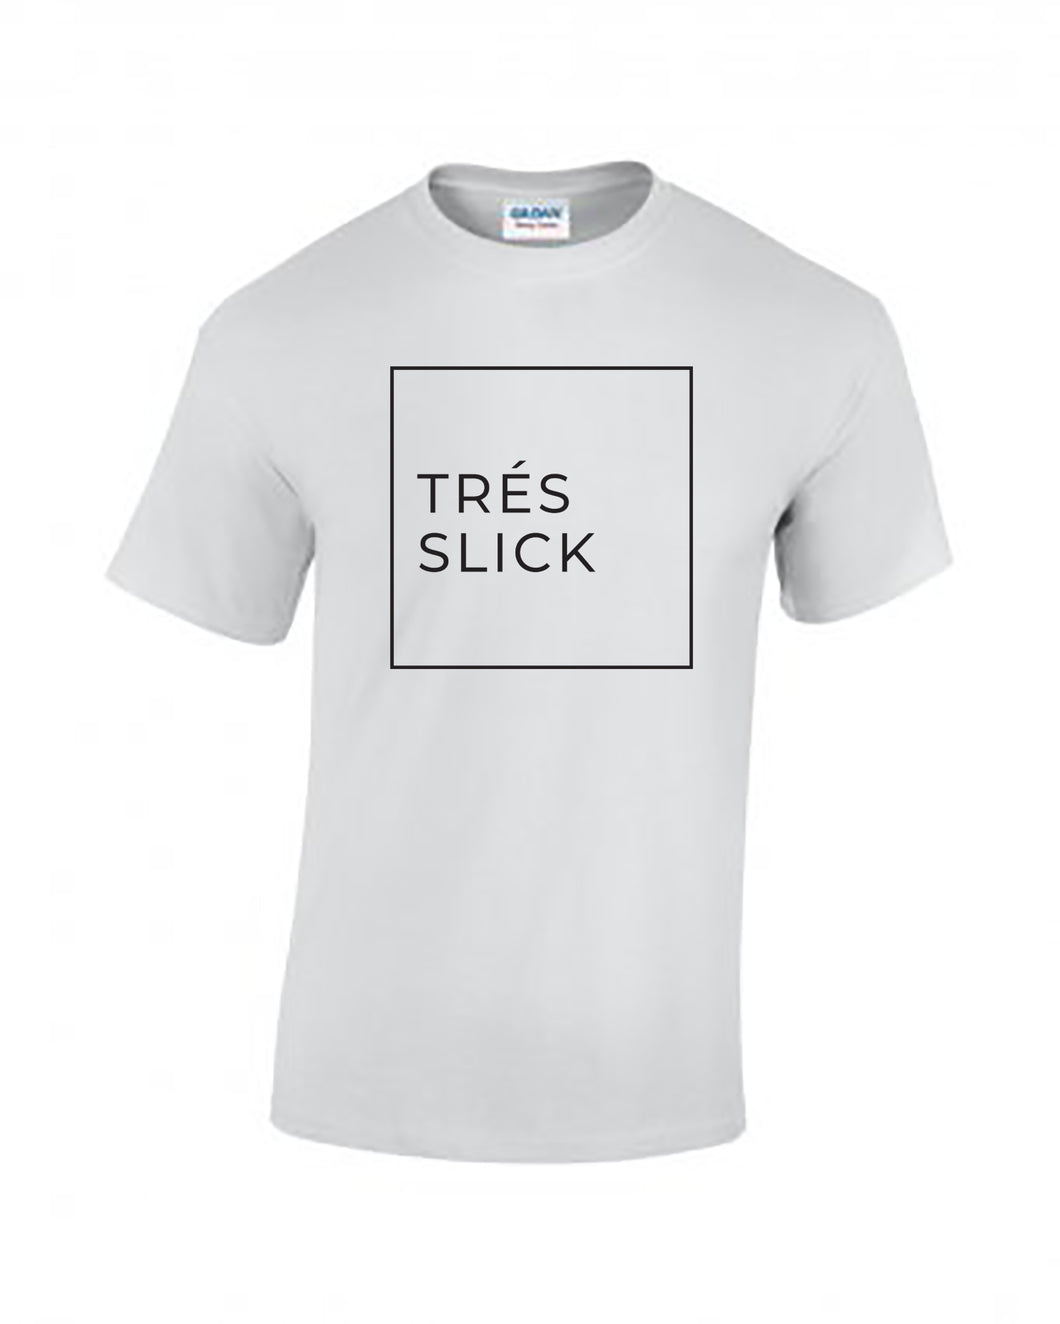 Tres Slick Square Tee - White